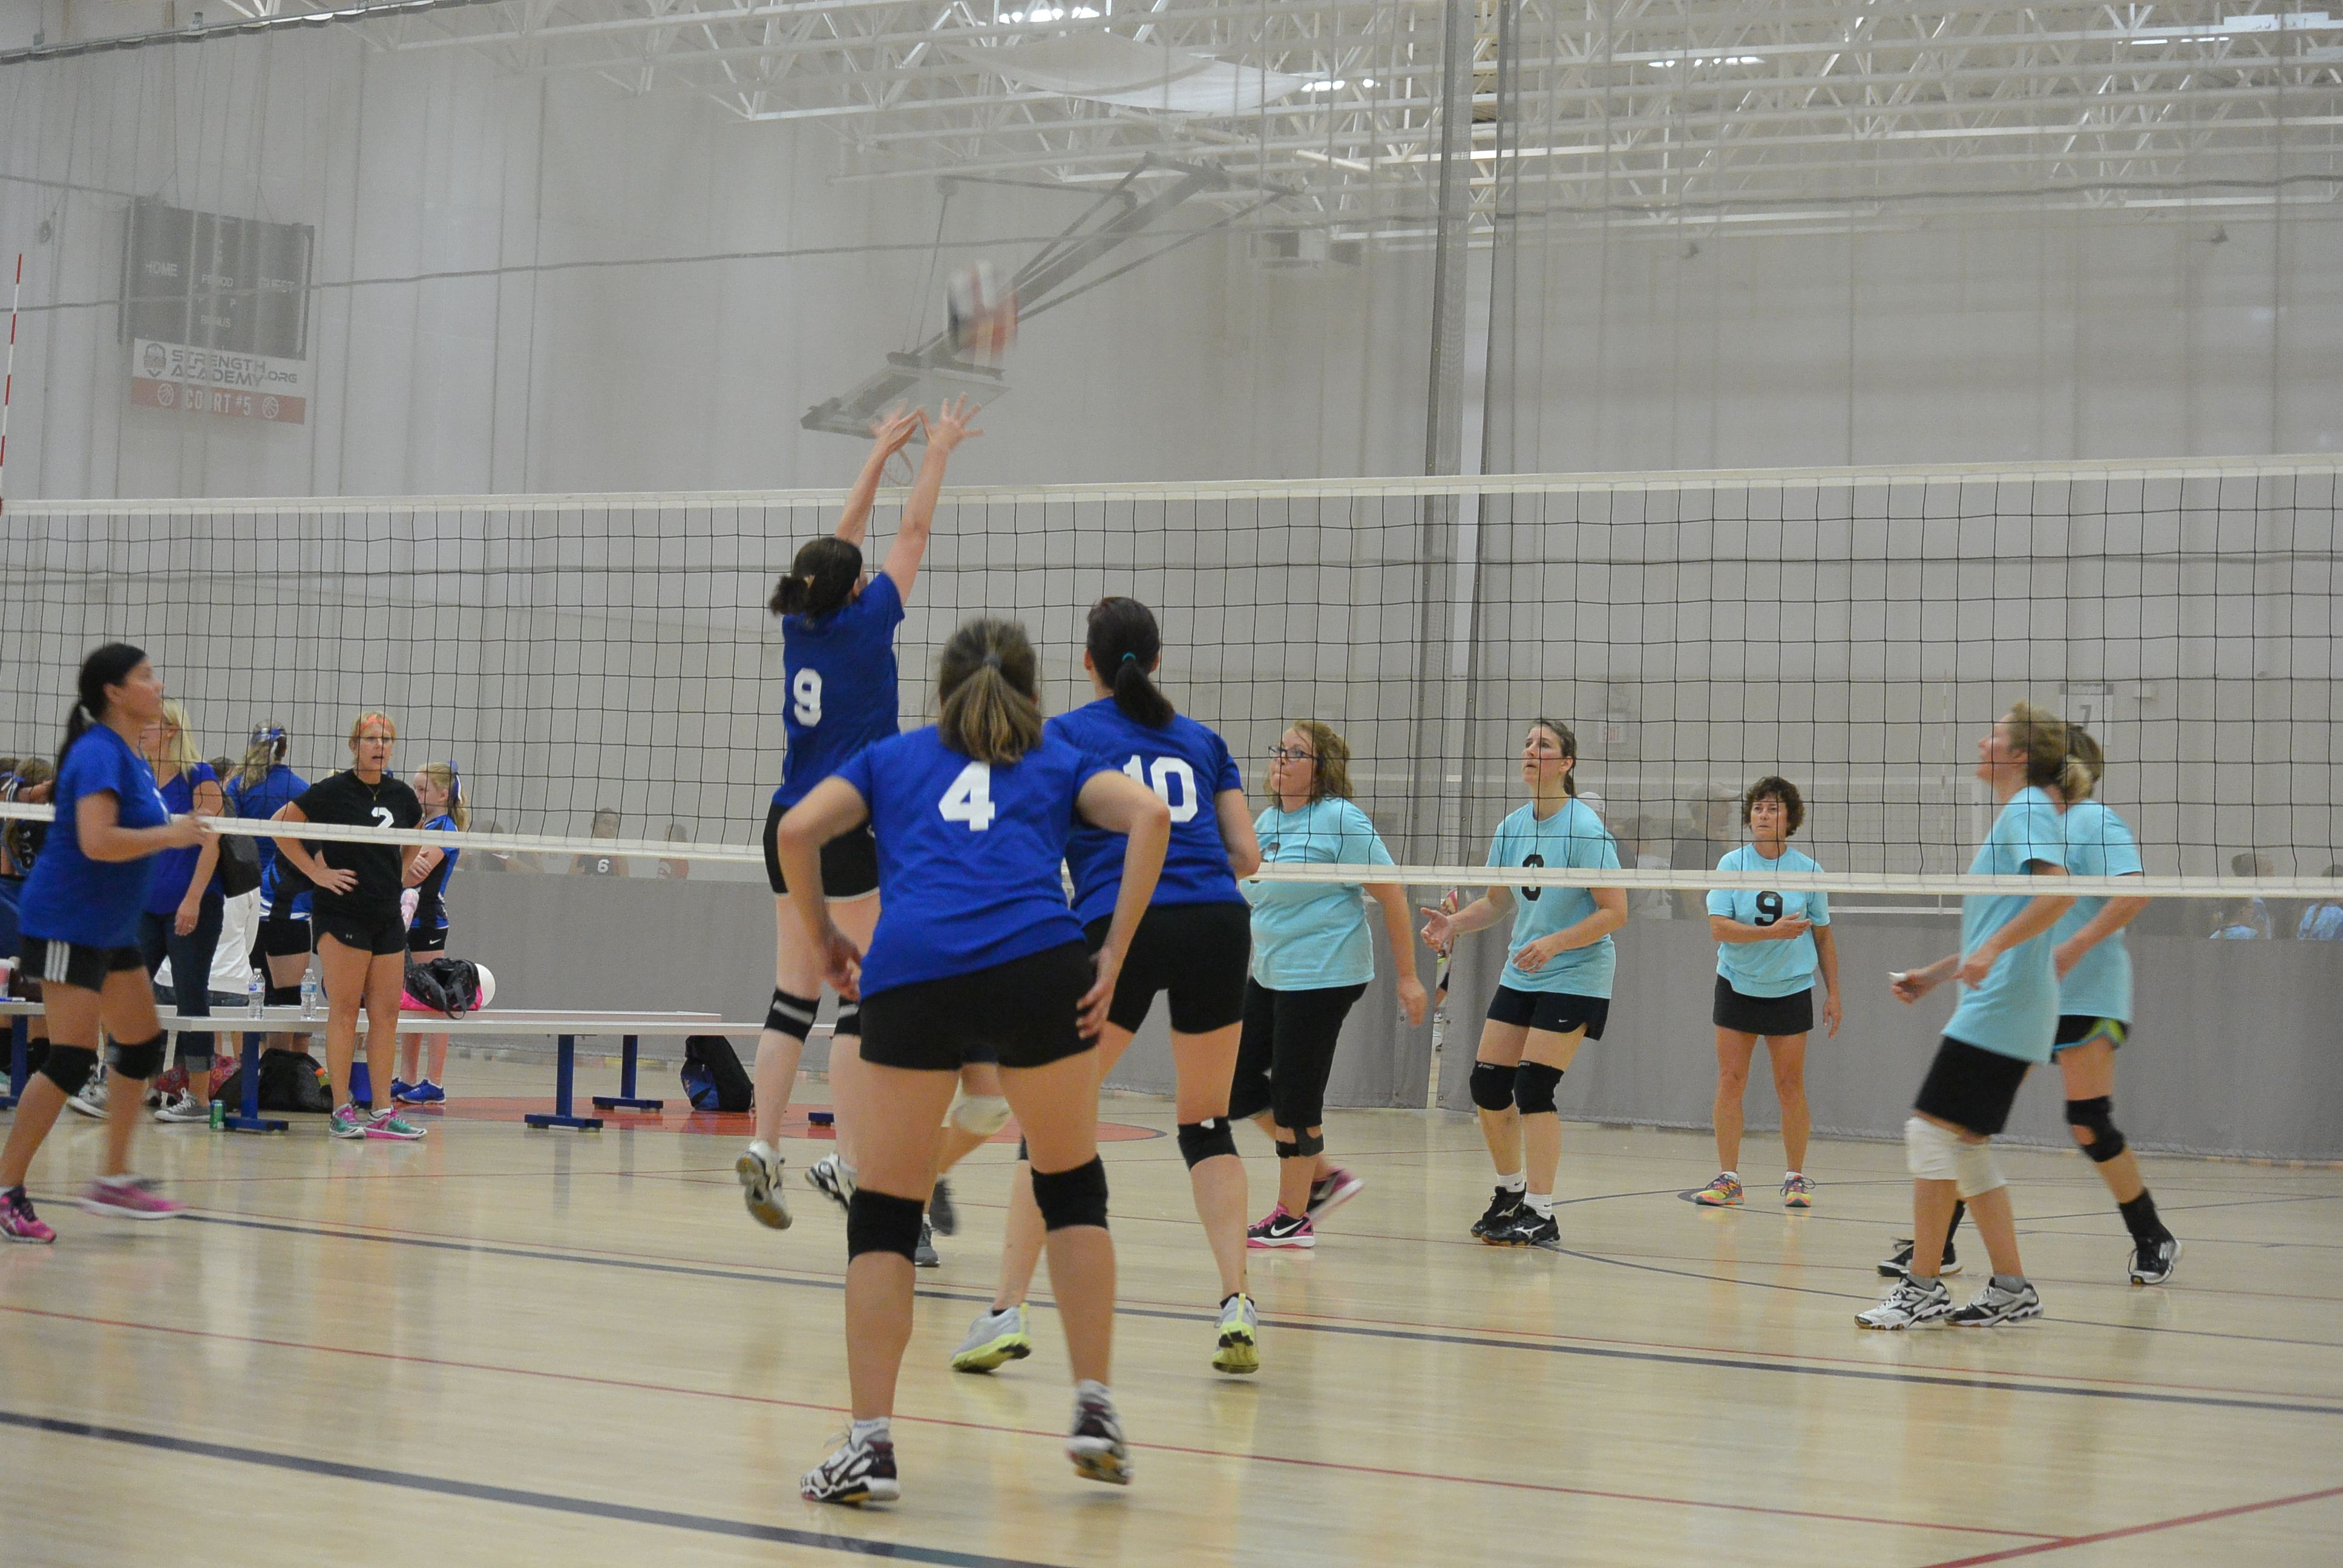 What size field is needed for volleyball